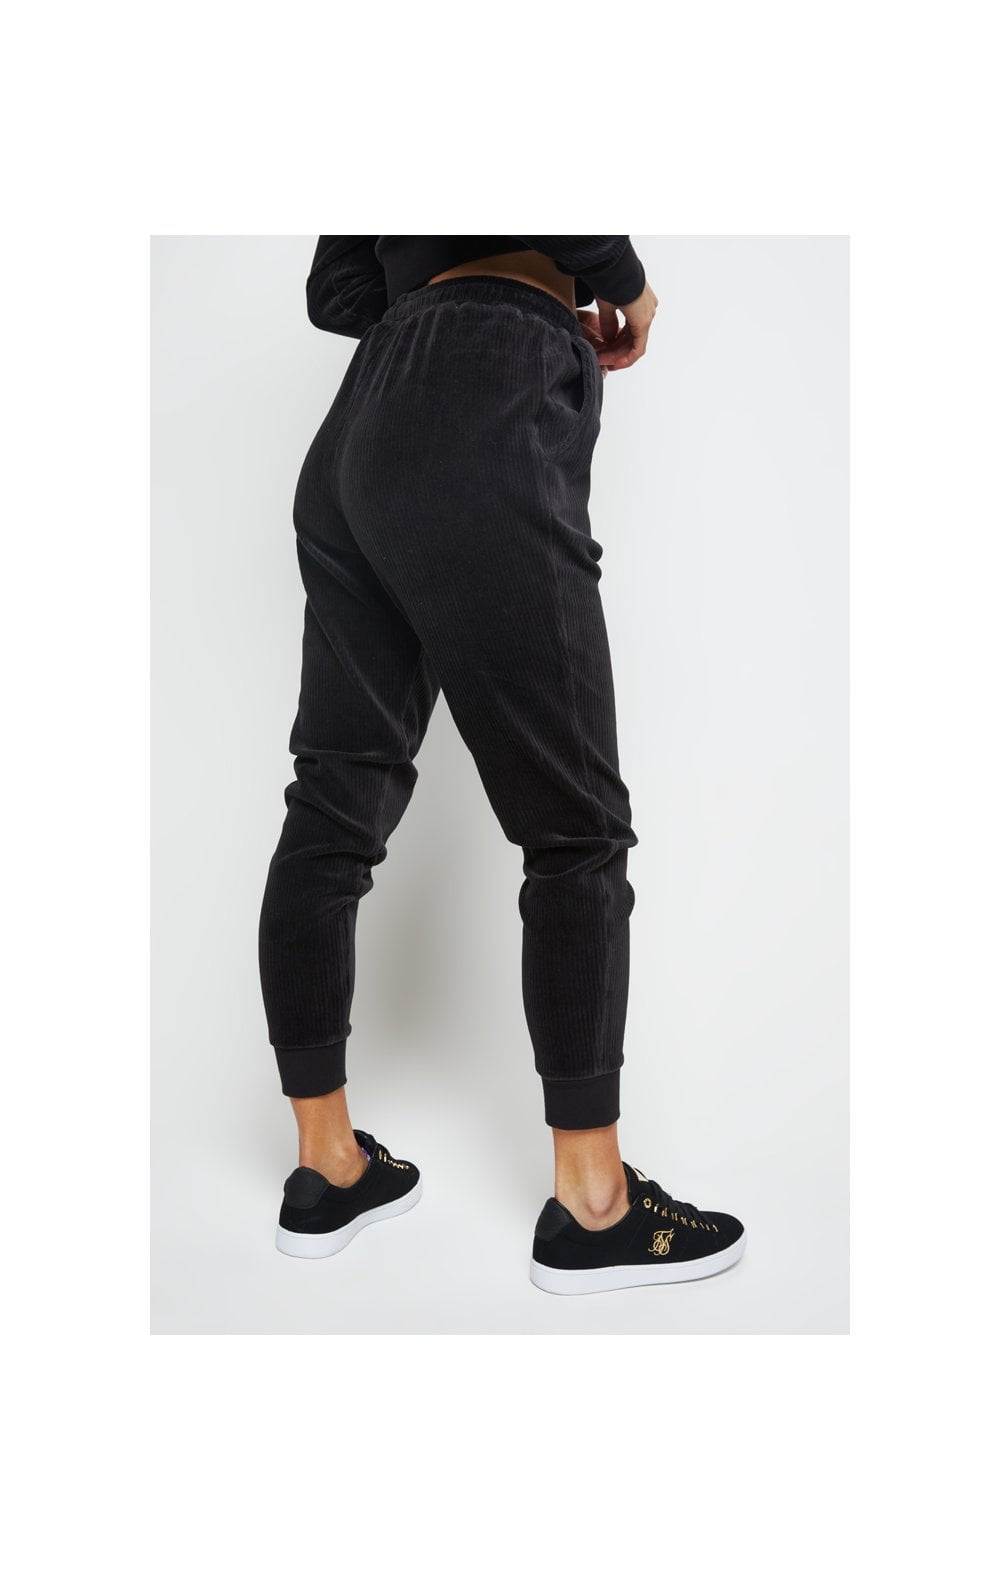 SikSilk Allure Joggers - Black (2)